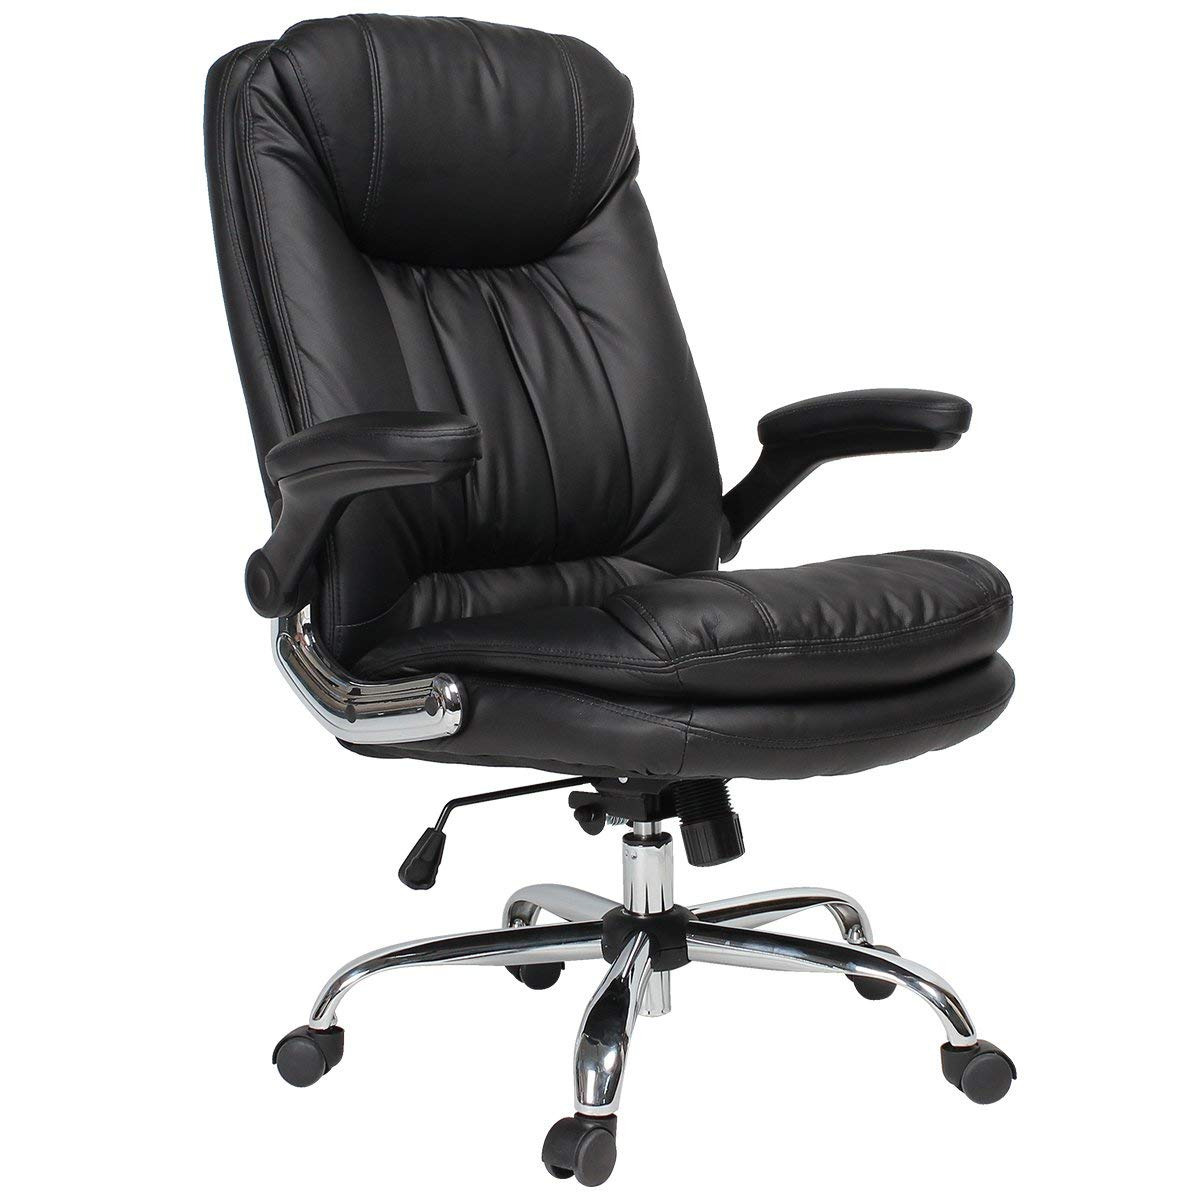 yamasoro ergonomic high back chair